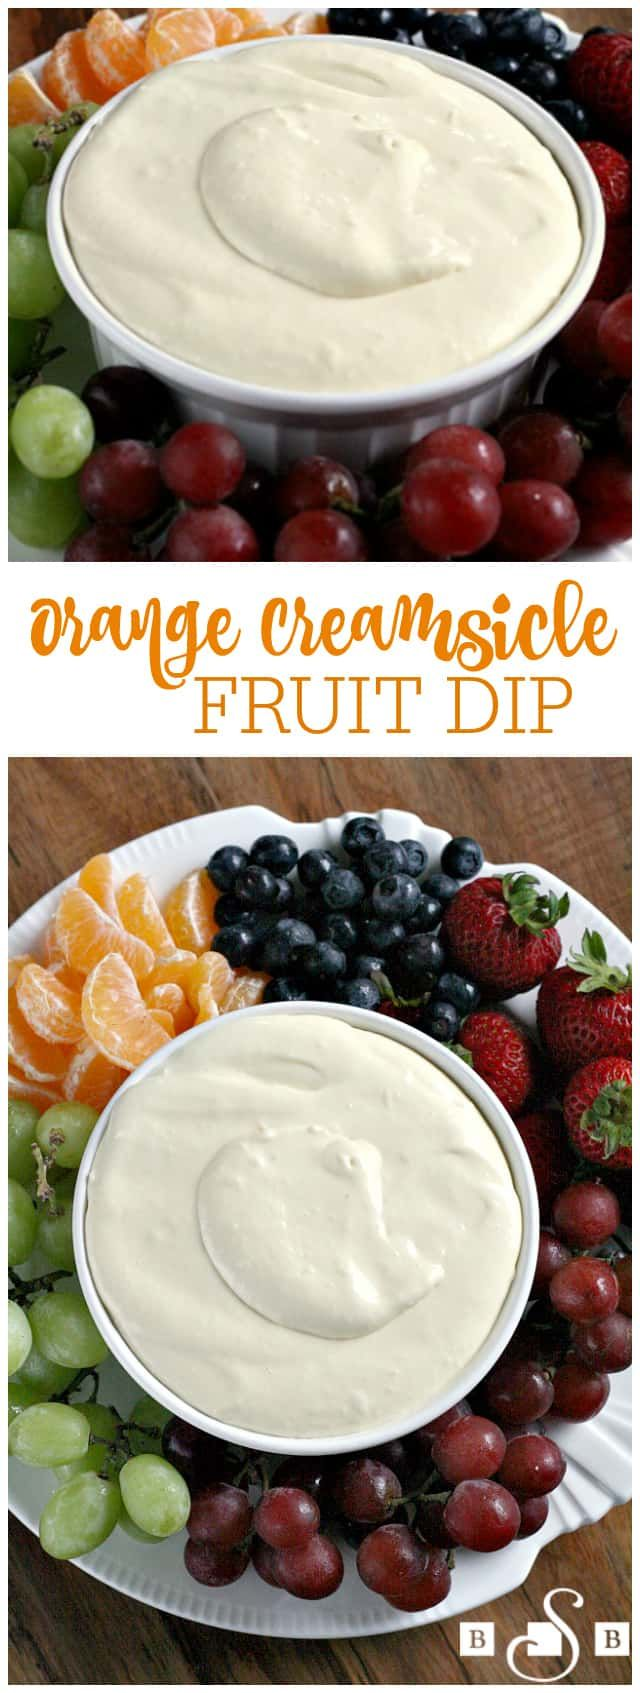 Orange Creamsicle Fruit Dip is simple and delicious with only three ingredients, and it tastes amazing with any variety of fresh fruit!